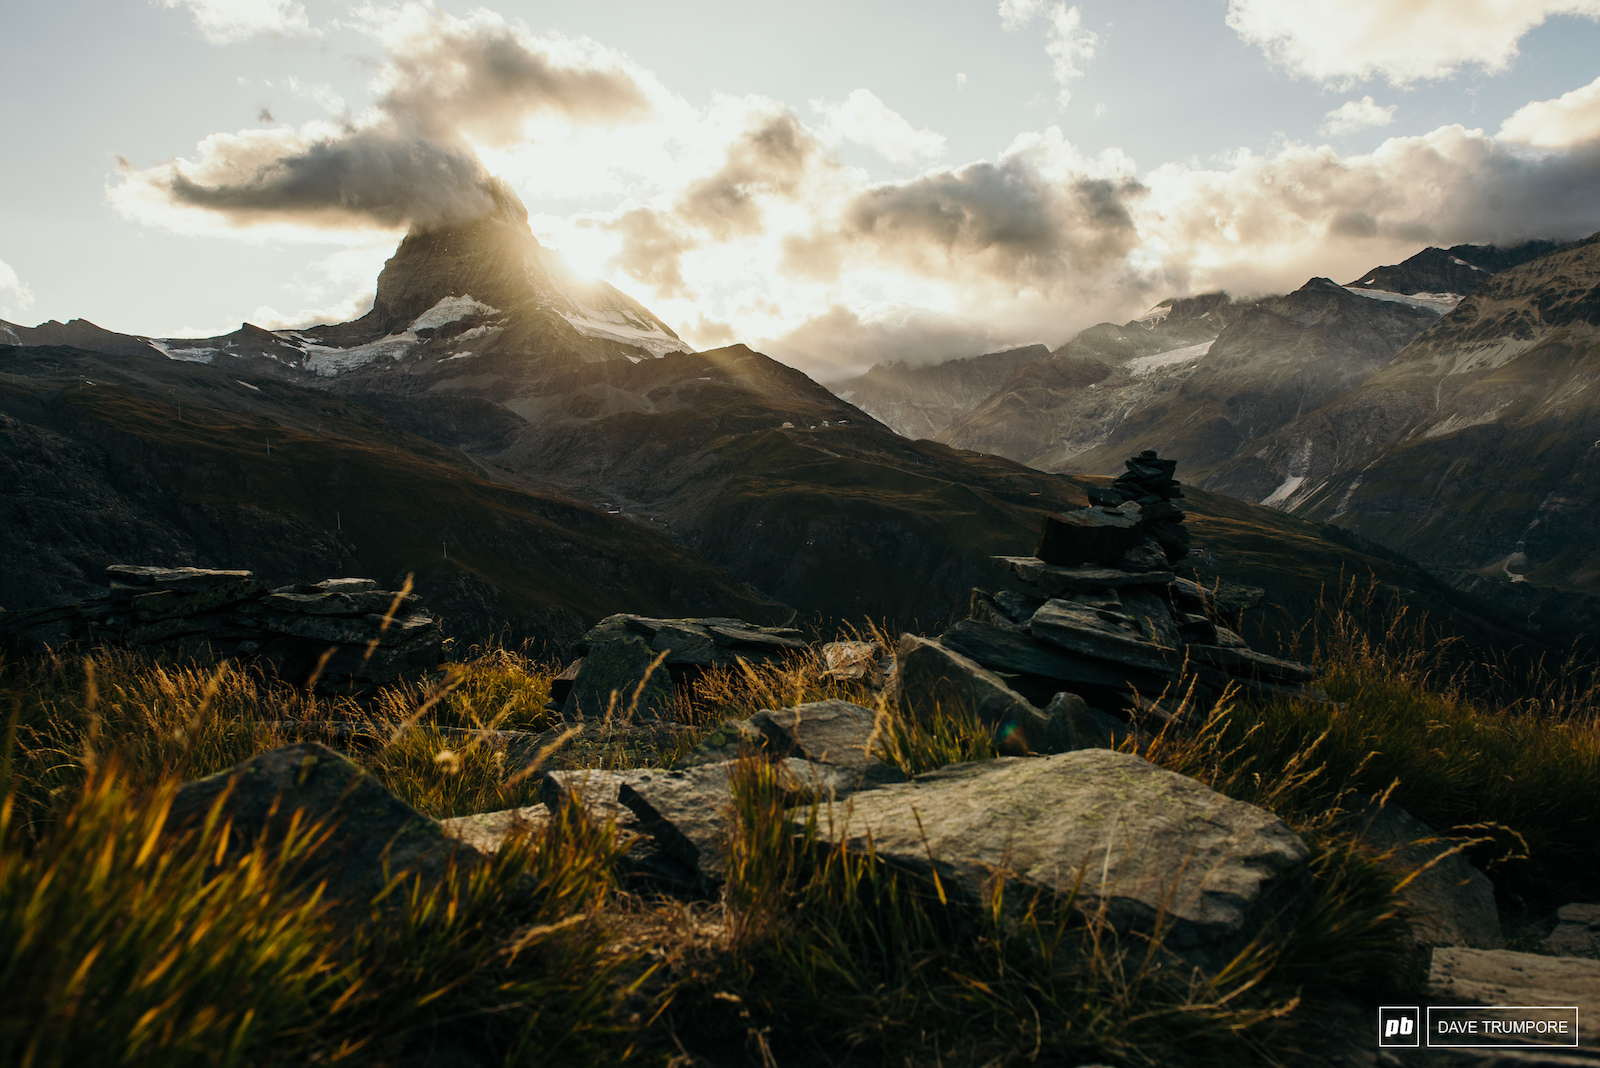 The finals sunset over the Matterhorn before practice gets underway tomorrow for the final round of the 2019 Enduro World Series